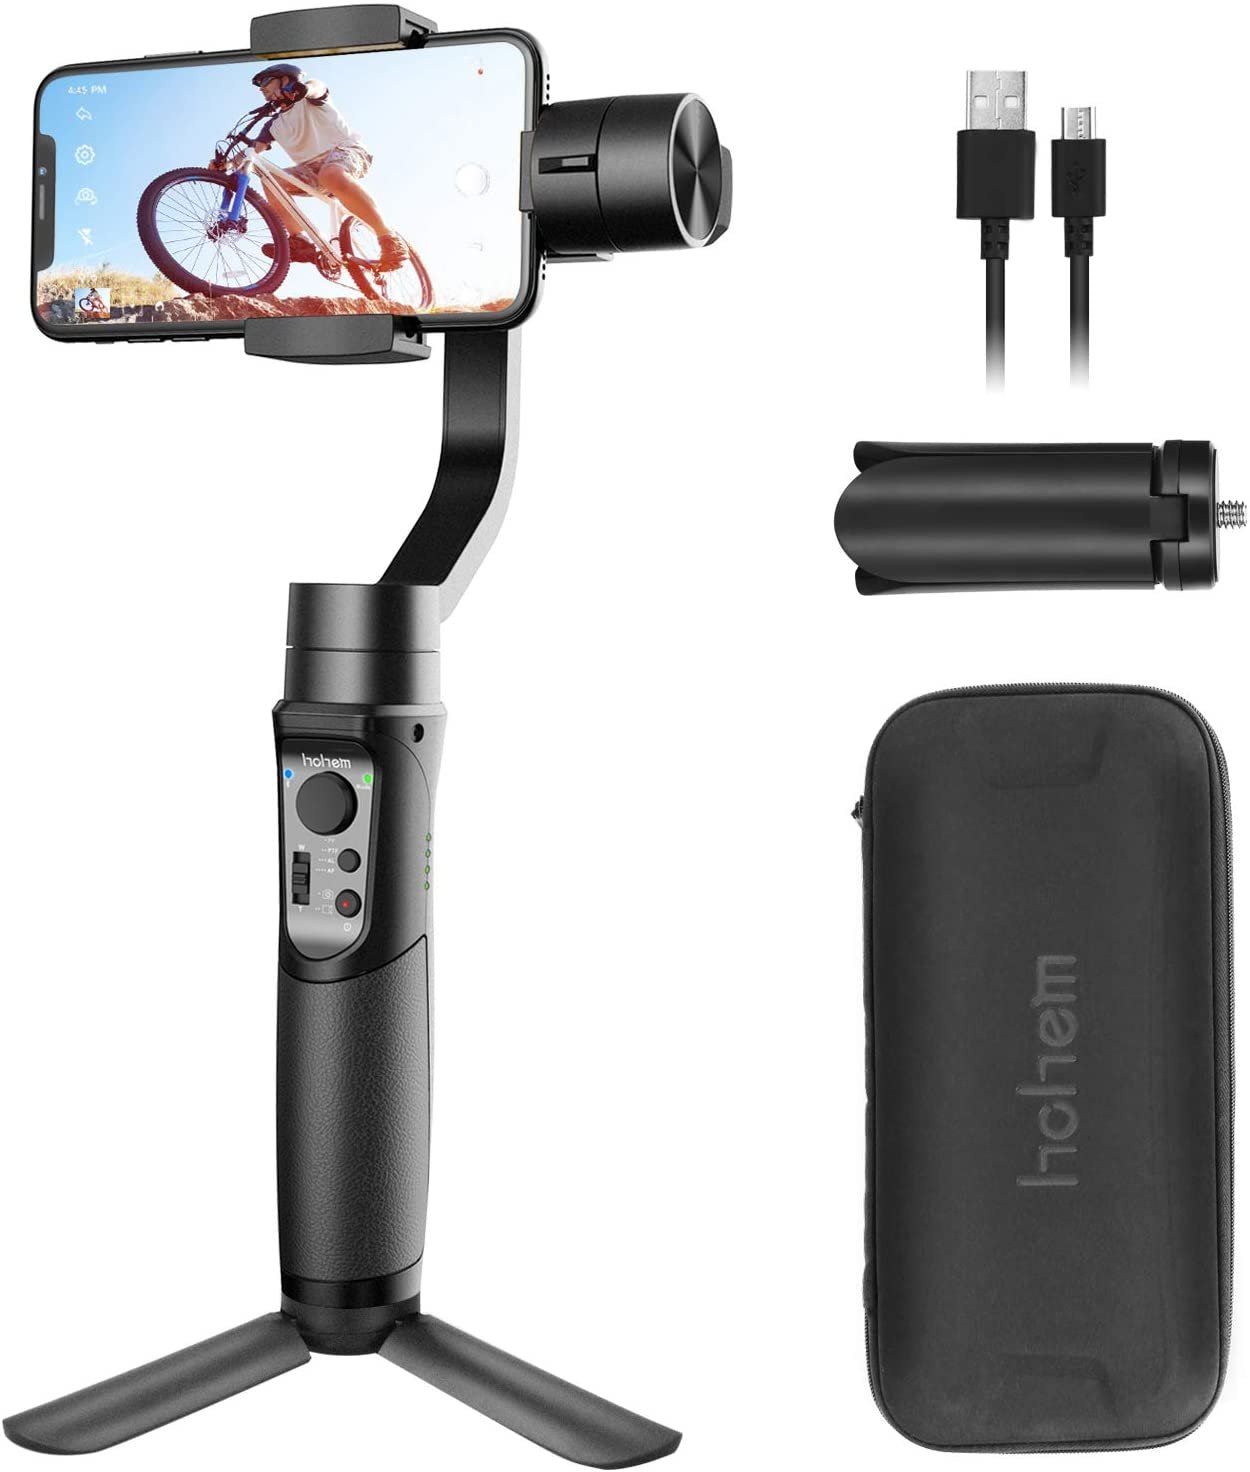 Smartphone Gimbal Stabilizer 3-Axis Handheld Phone Gimble with Face Tracking for Android Smartphone for iPhone 11 Pro/XS/XS MAX/XR/8P/8 for Galaxy S10/S9 (Hohem iSteady Mobile Plus: 2019 New Model)